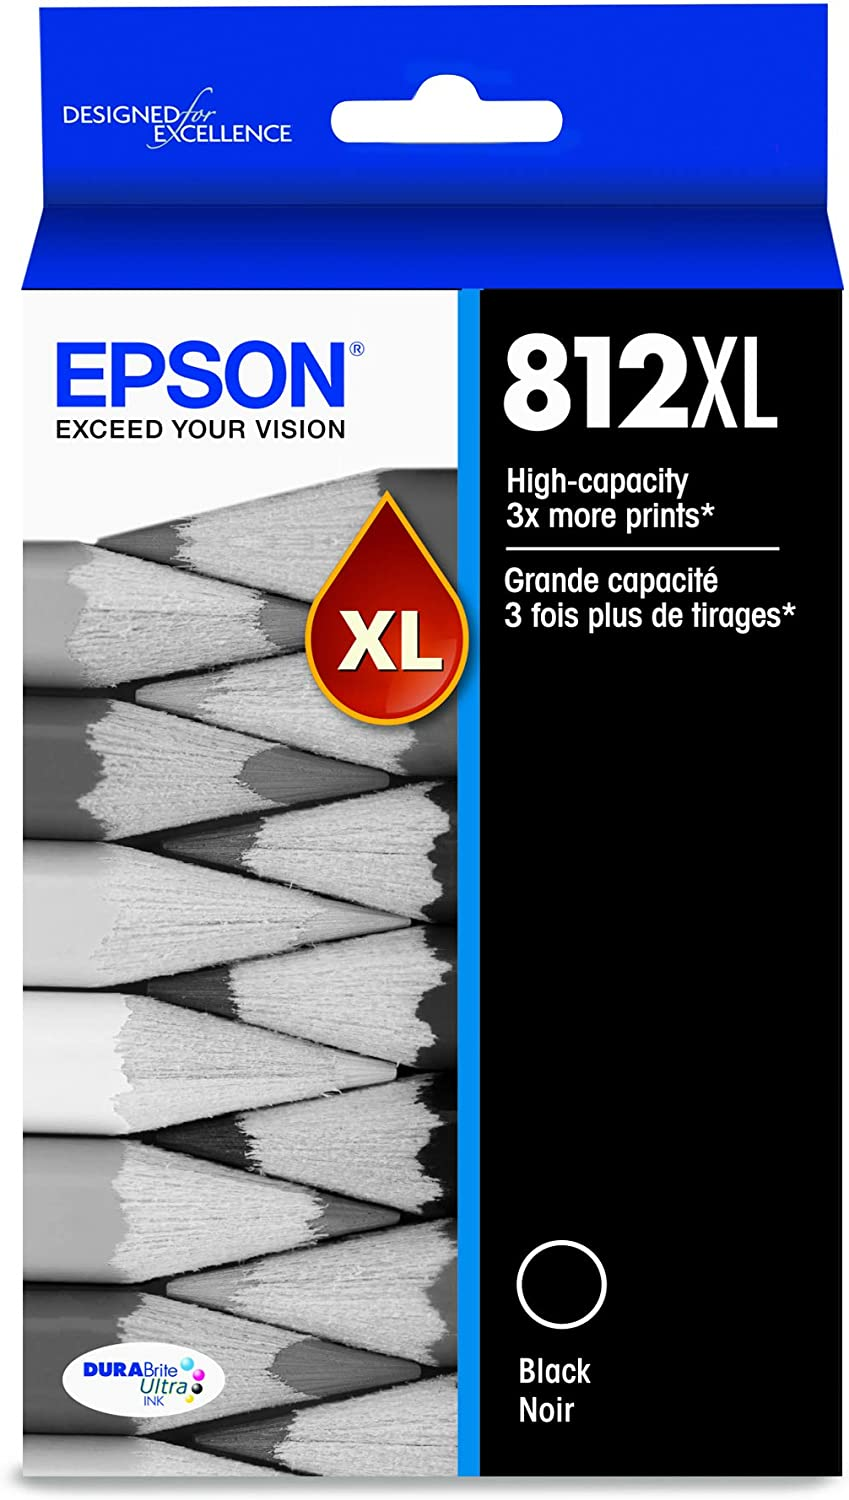 EPSON T812 DURABrite Ultra Ink High Capacity Black Cartridge (T812XL120-S) for Select Epson Workforce Pro Printers